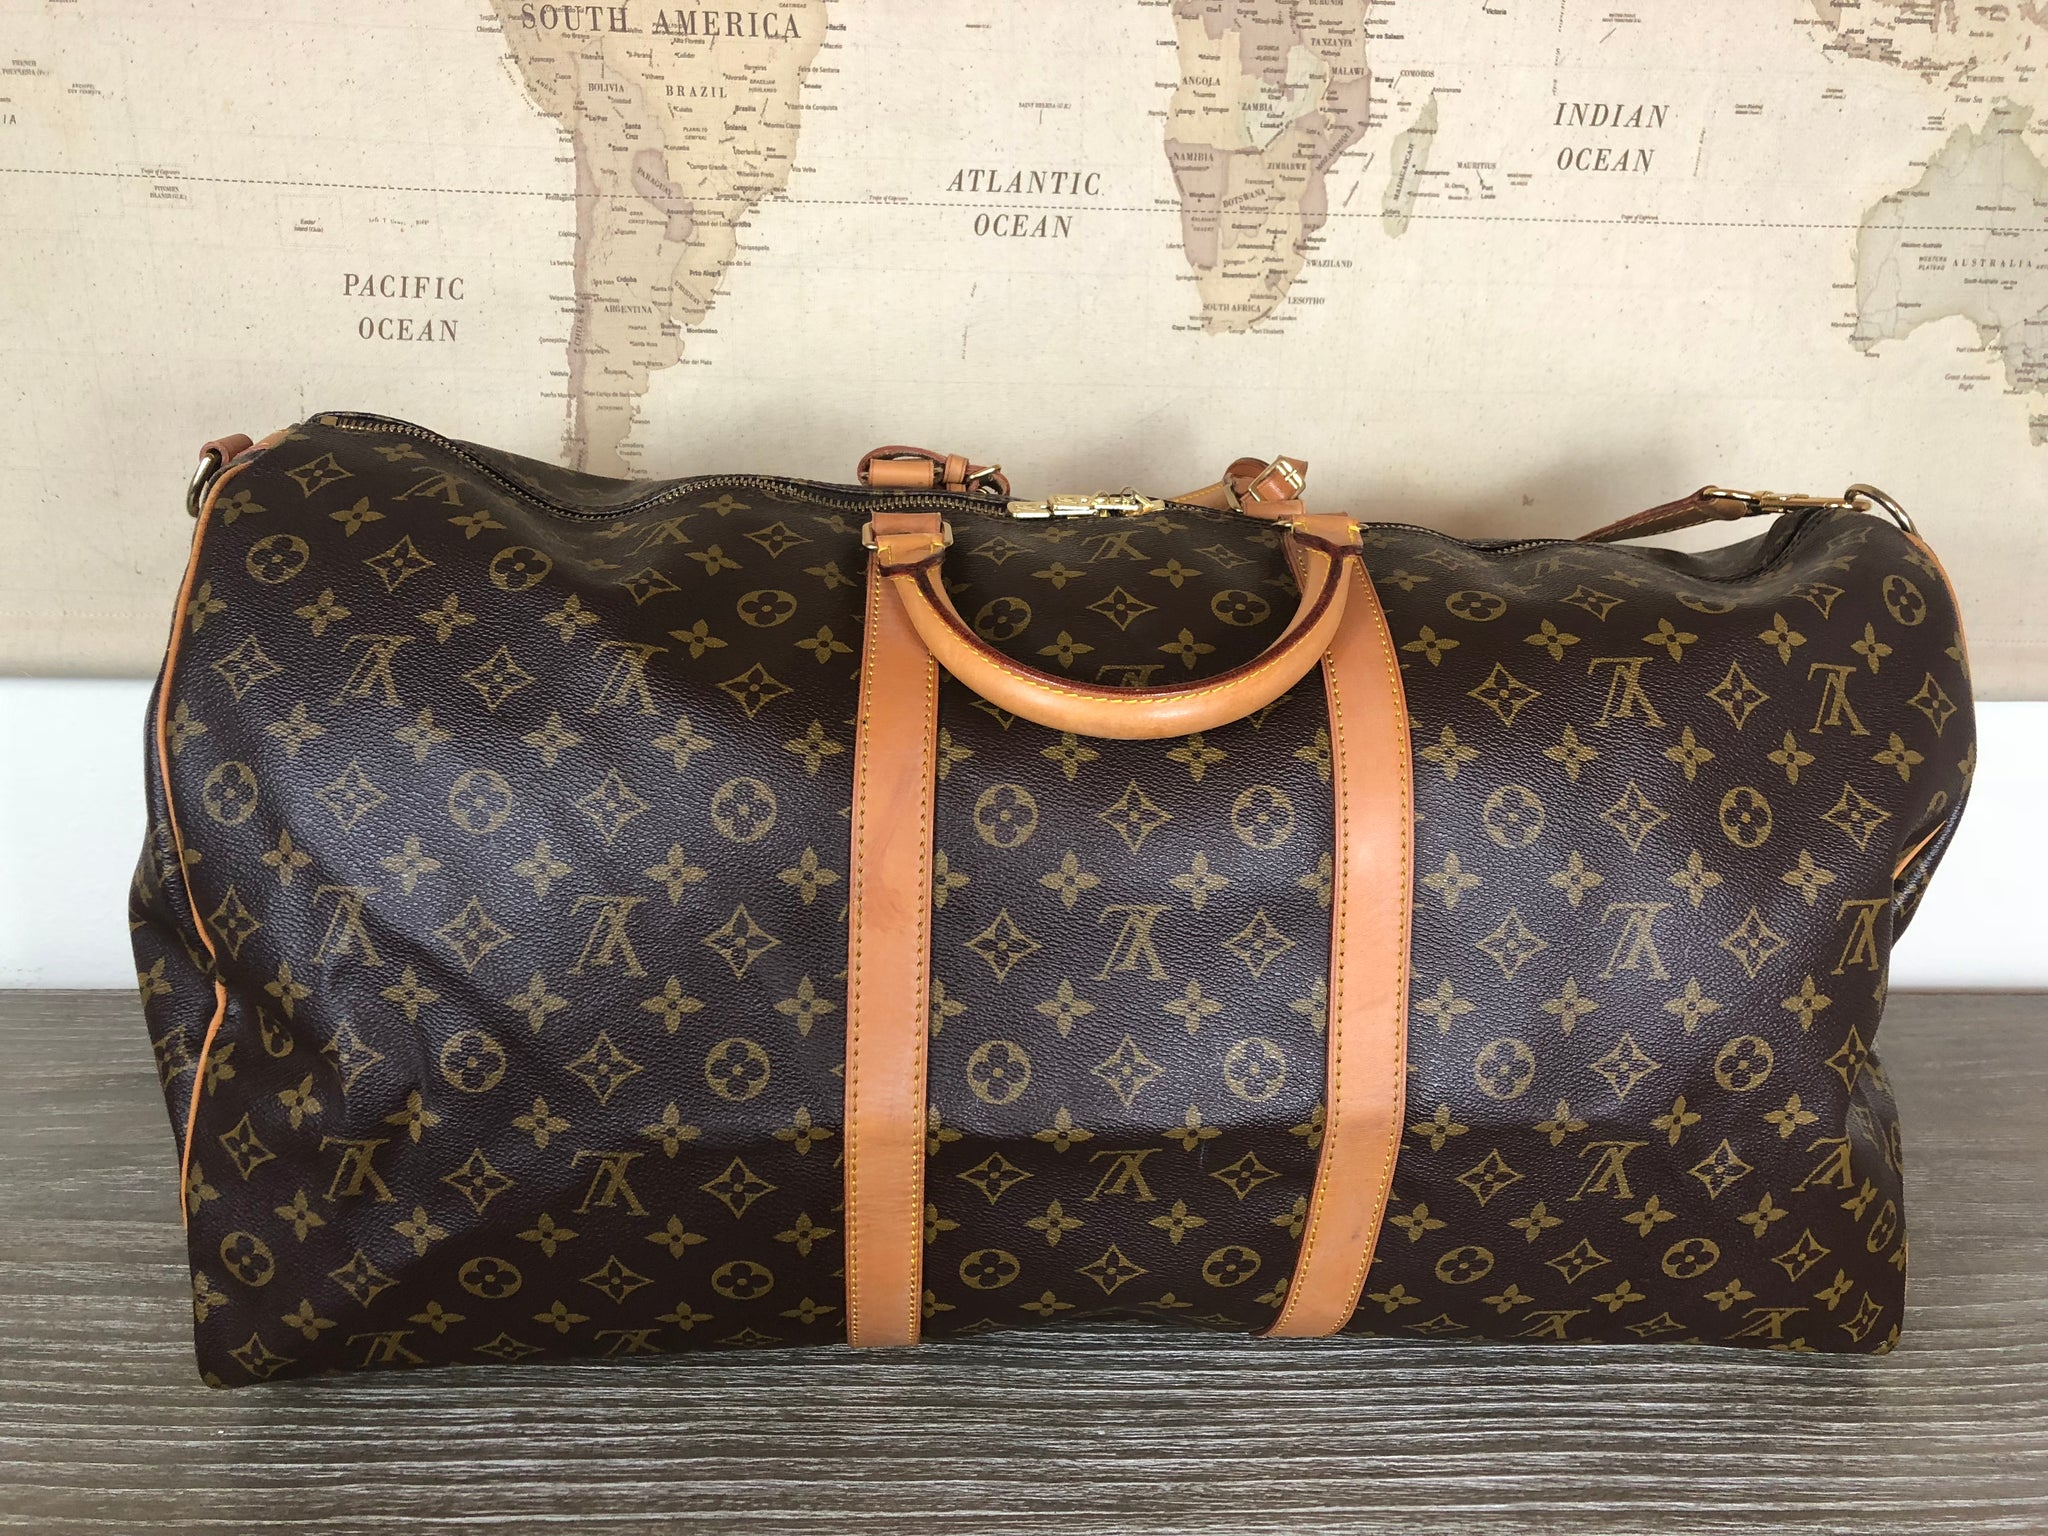 LOUIS VUITTON Keepall Bandouliere 60 Duffel Bag